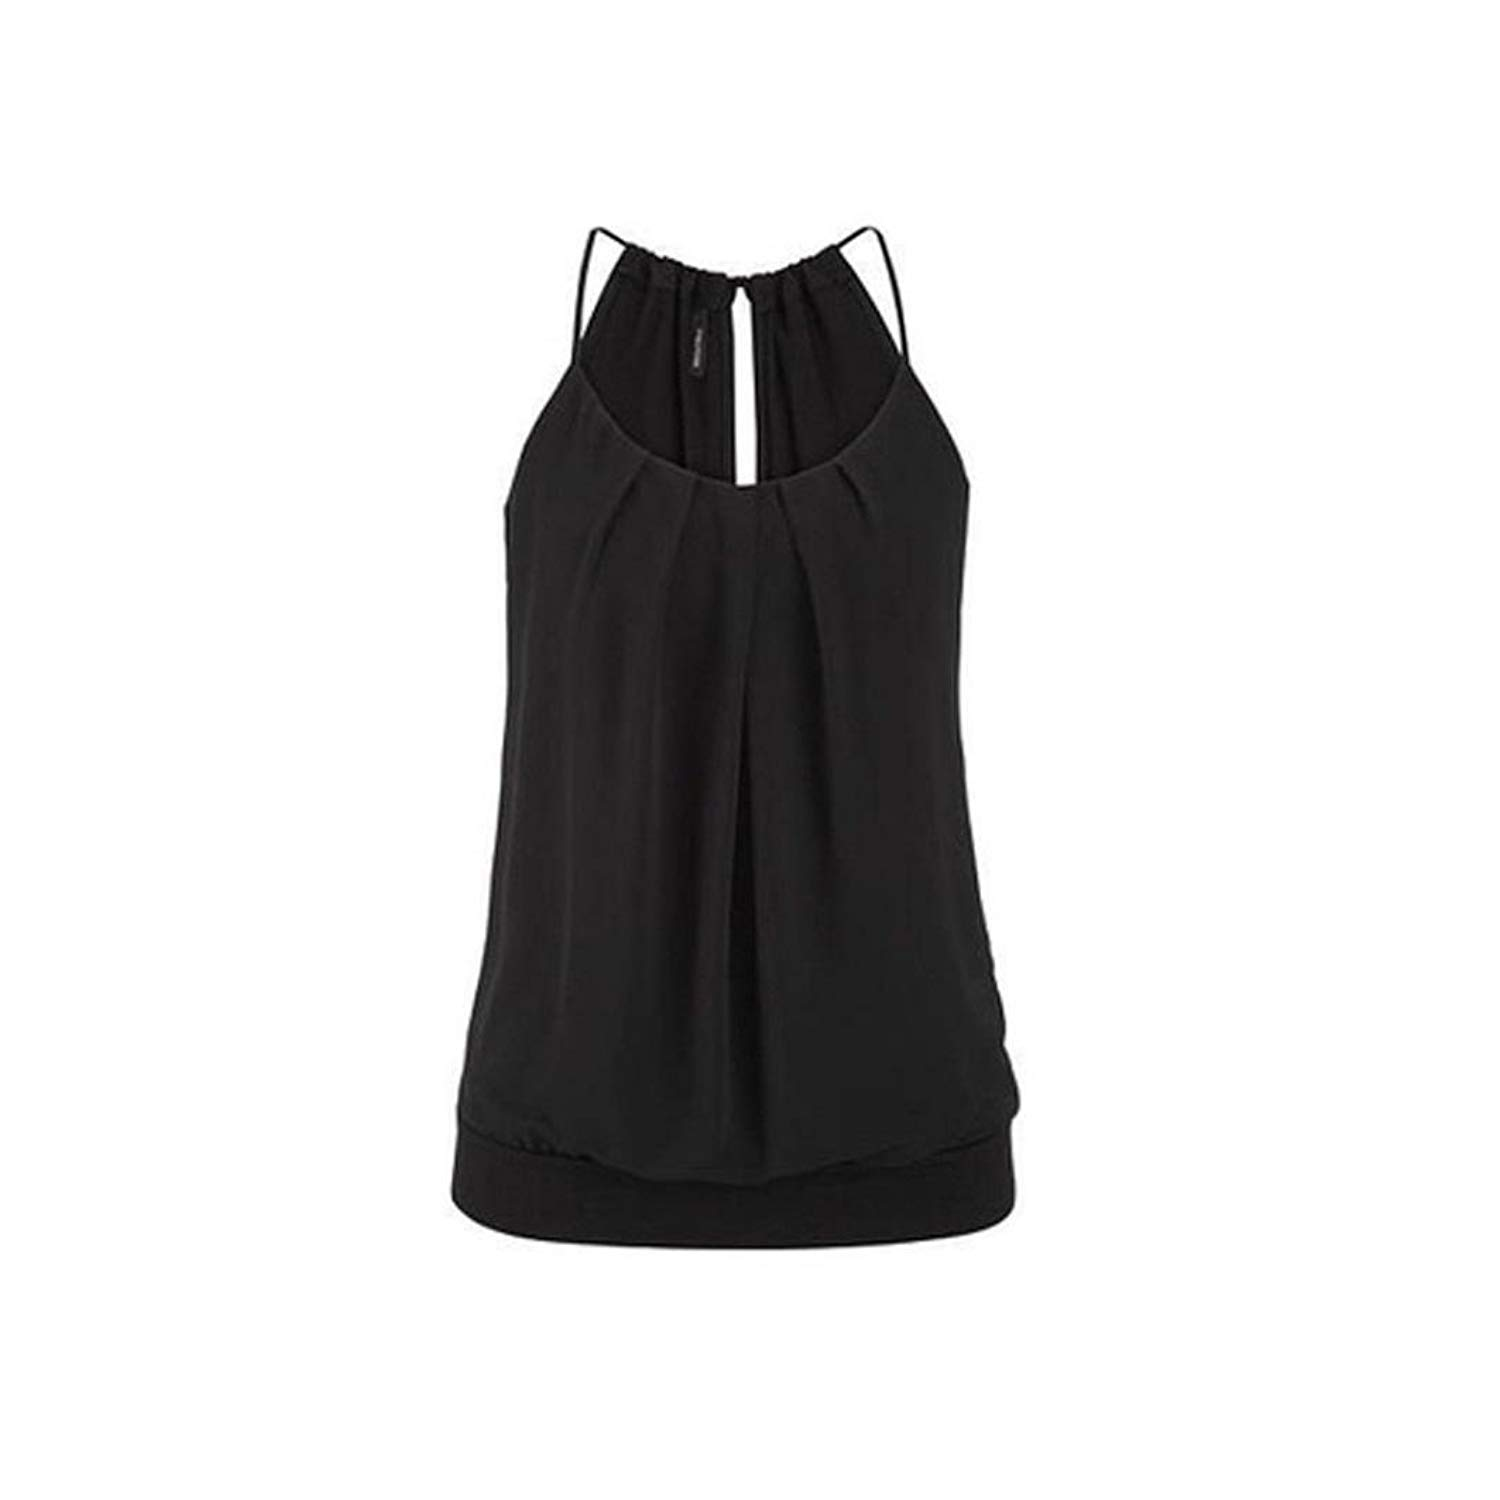 Paymenow Hot Sale Women T Shirts Tank Tops for Women 2018, Solid Sleeveless Blouse Casual Summer Ruffled Cami Vest Camisole